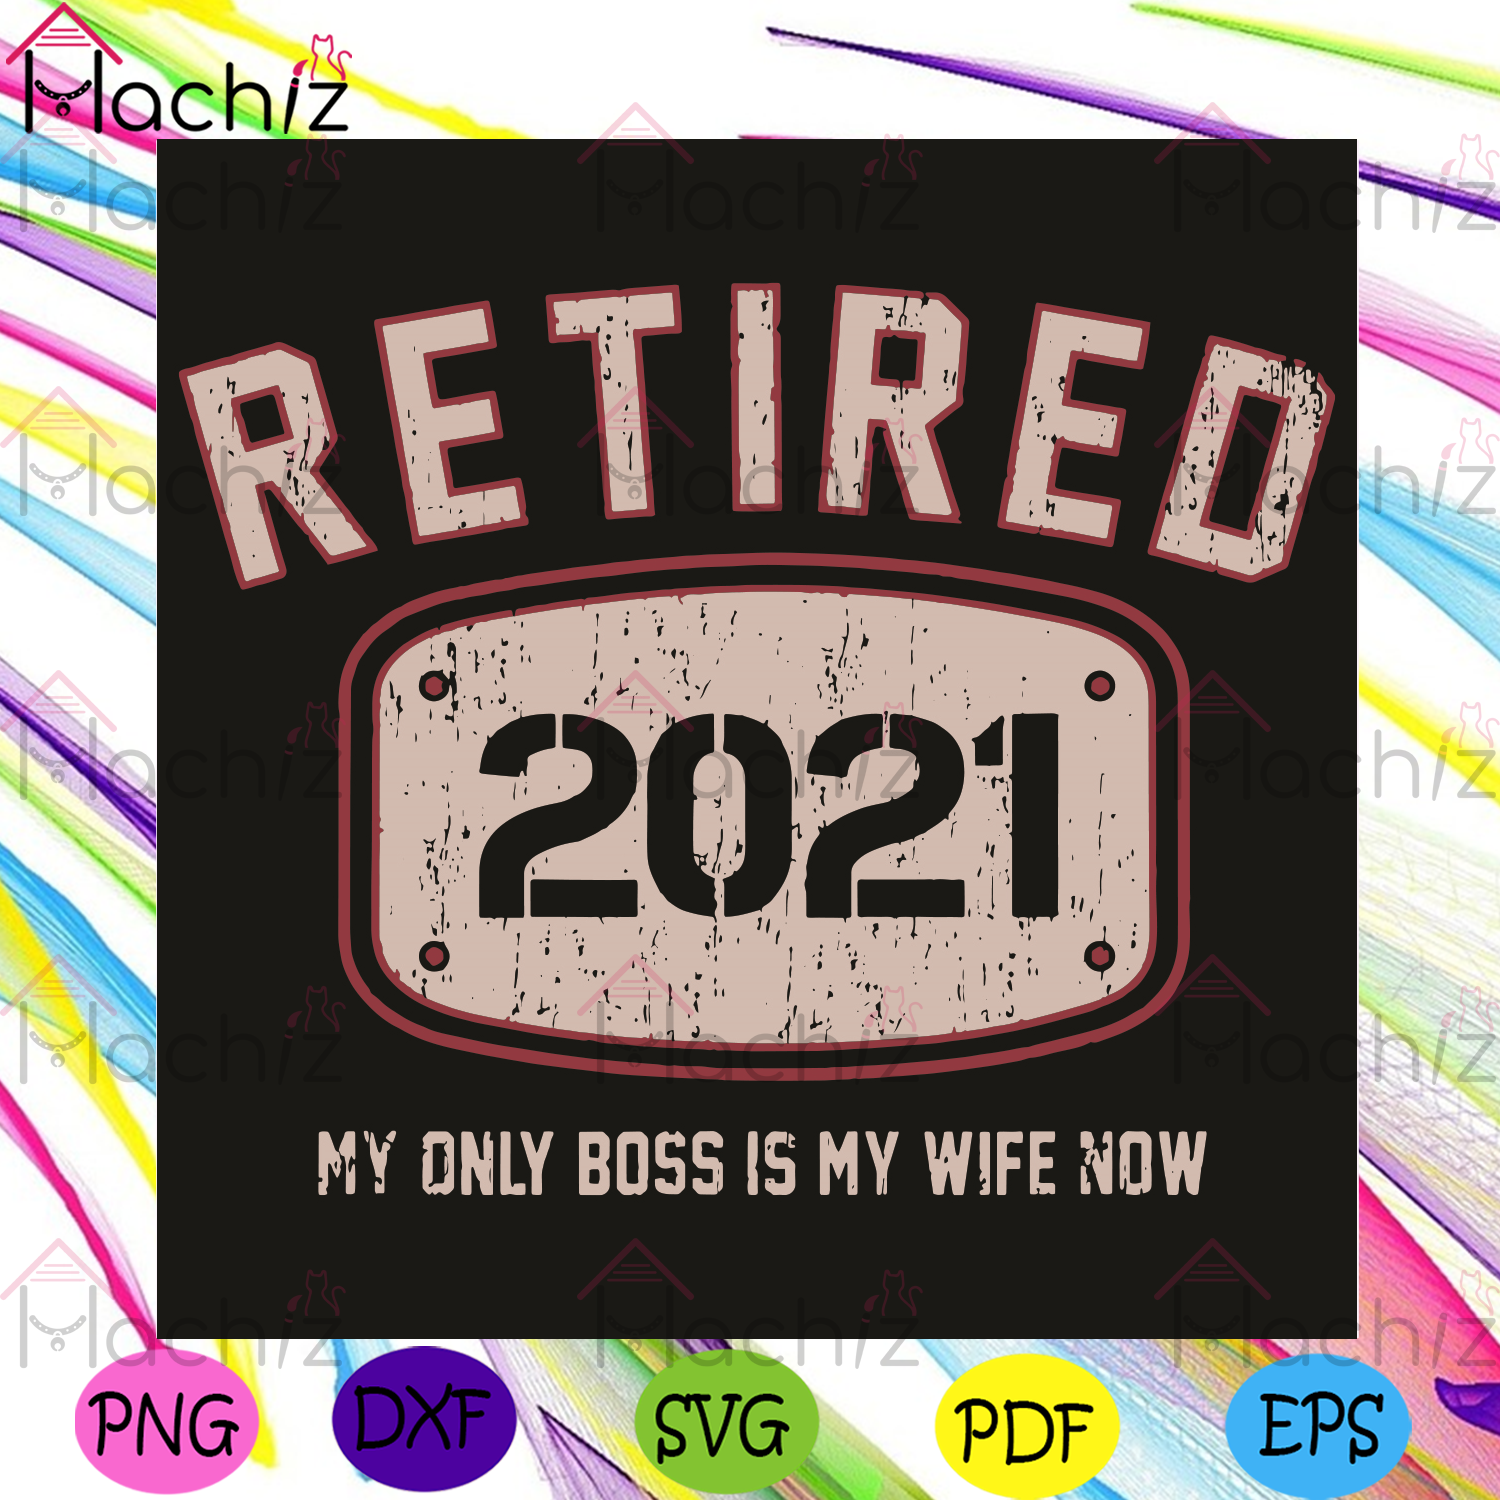 Retired 2021 My Only Boss Is Wife Now Svg, Trending Svg, Happy New Year 2021 Svg, Retire 2021 Svg, Wife Svg, Boss Svg, New Year Svg, 2021 Svg, Hello 2021 Svg, New Year Party Svg, New Year Gift Svg, Funny Quotes Svg